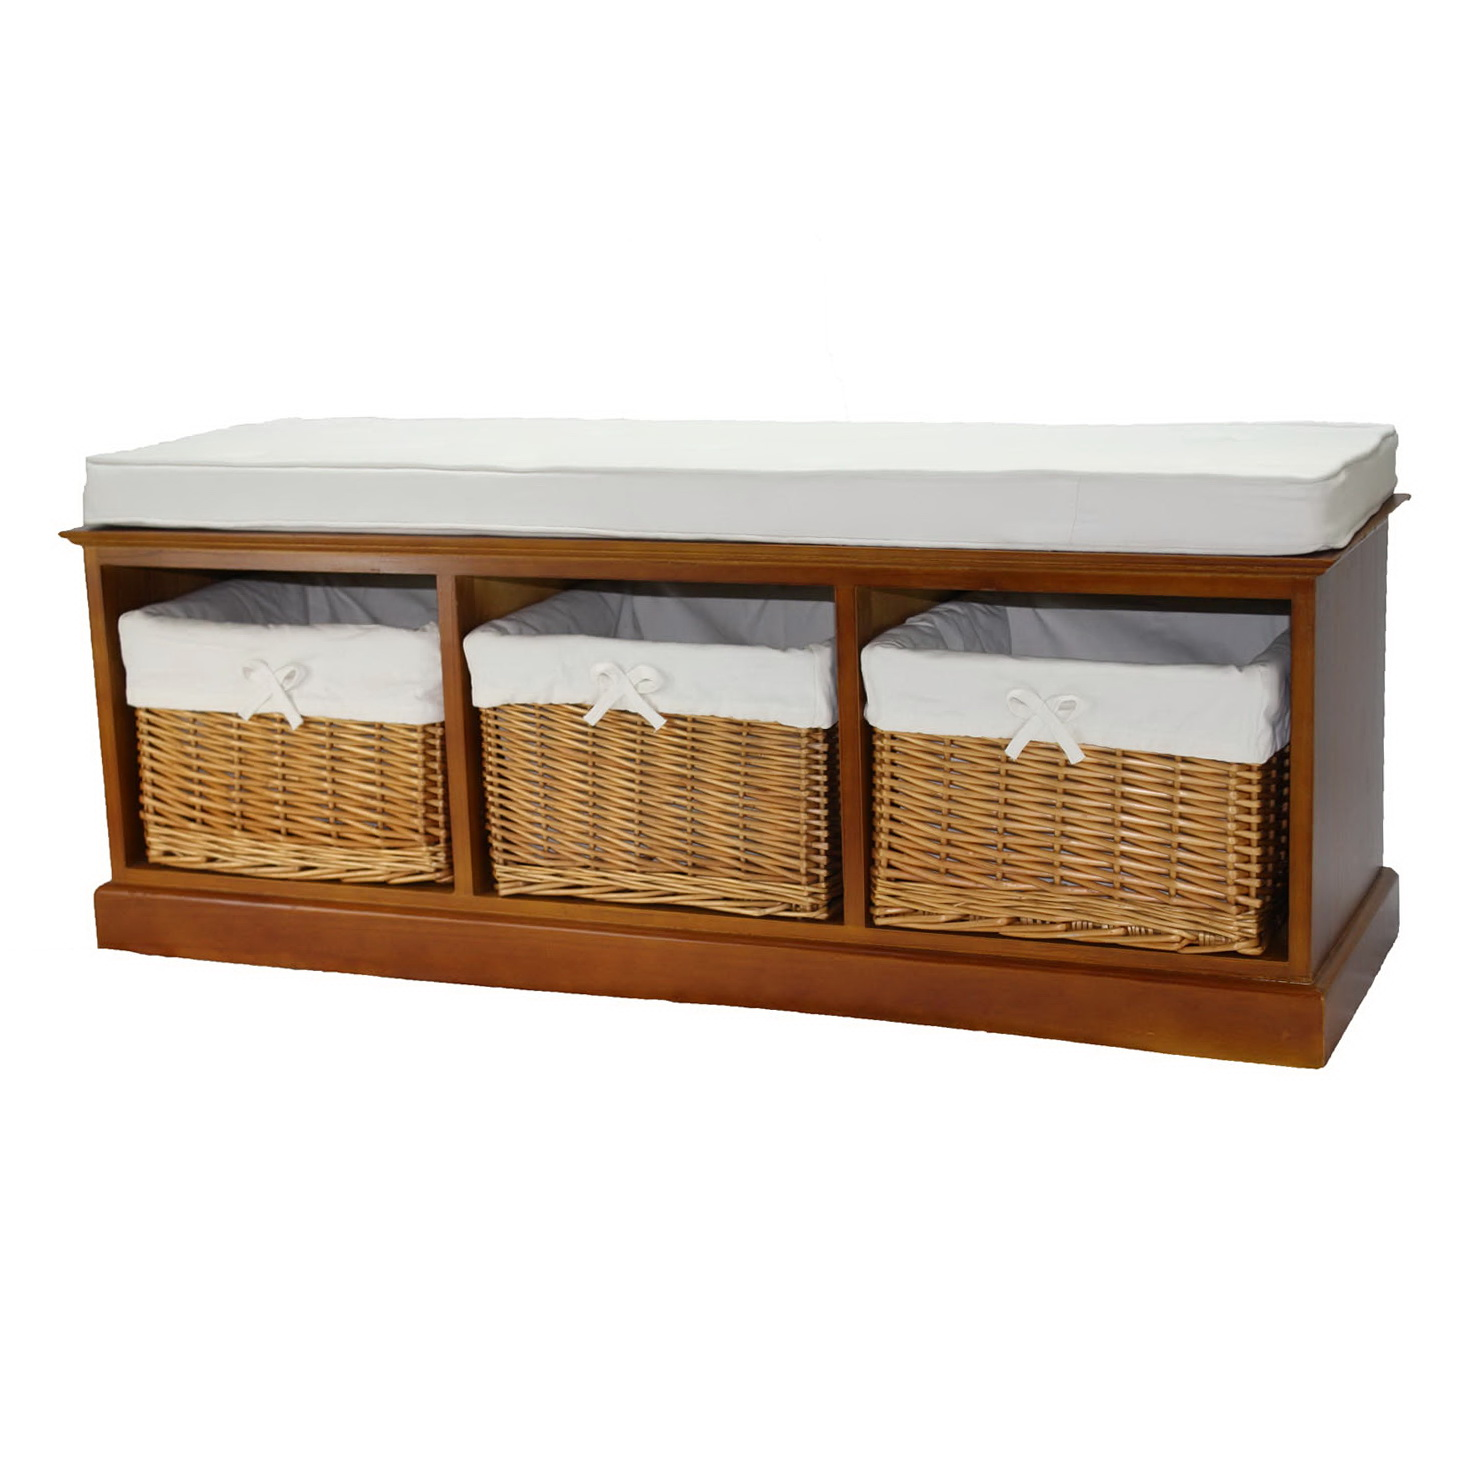 Wood storage bench with baskets home design ideas Bench with baskets